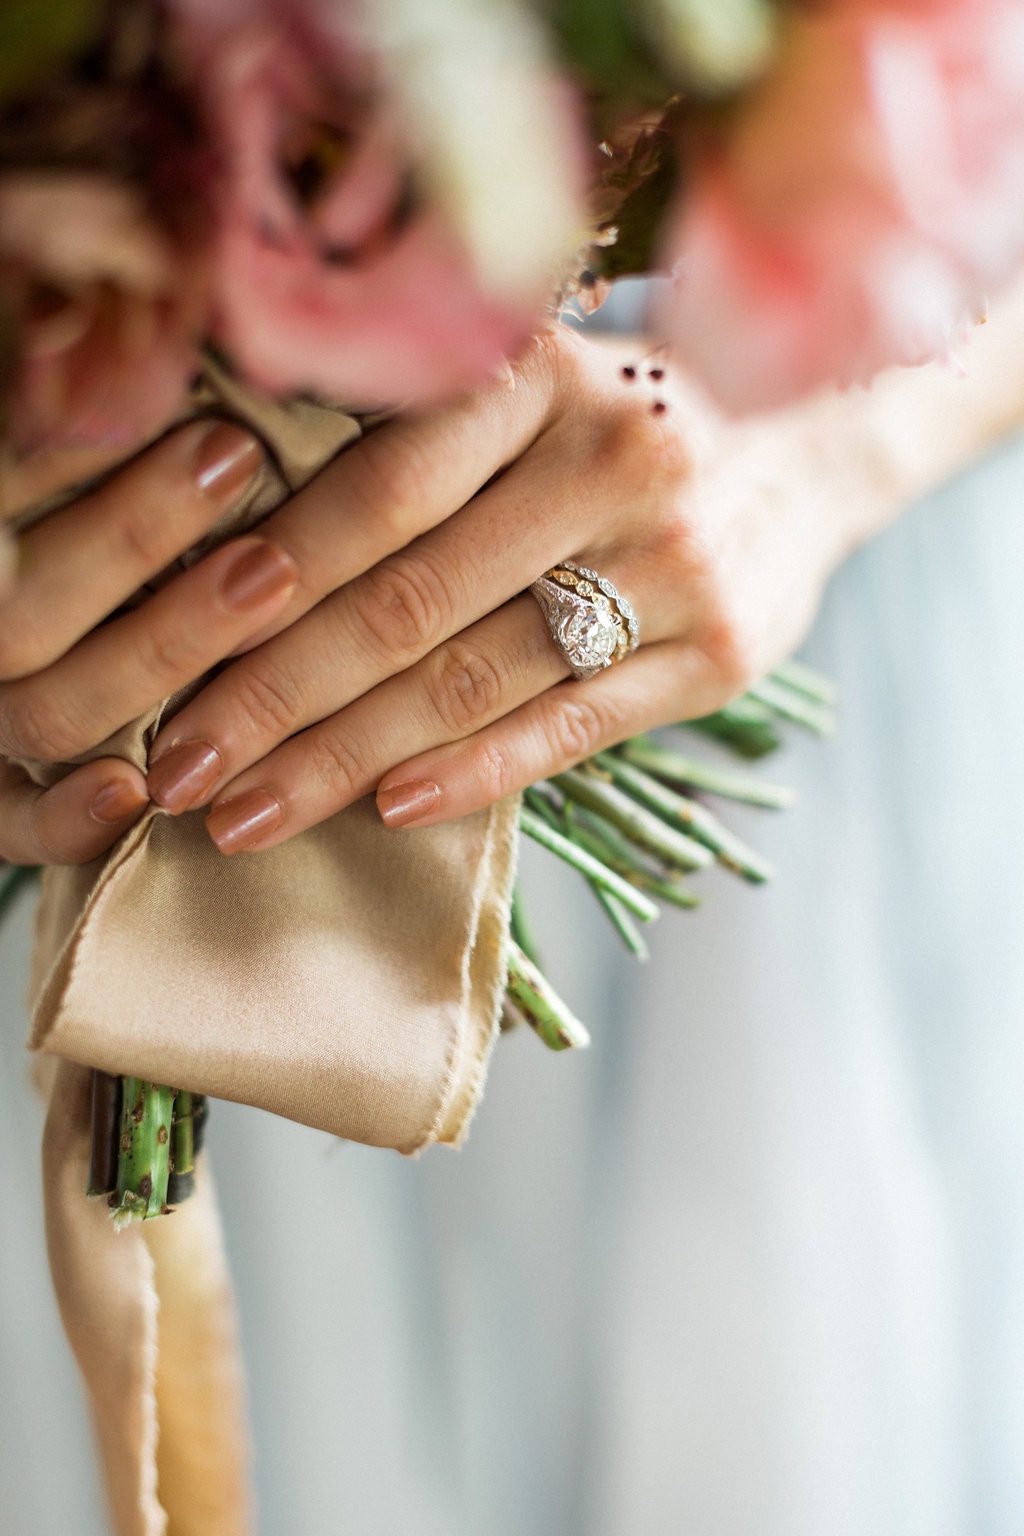 vintage inspired wedding engagement rings - https://ruffledblog.com/cloudy-day-wedding-inspiration-with-a-hand-painted-bridal-gown